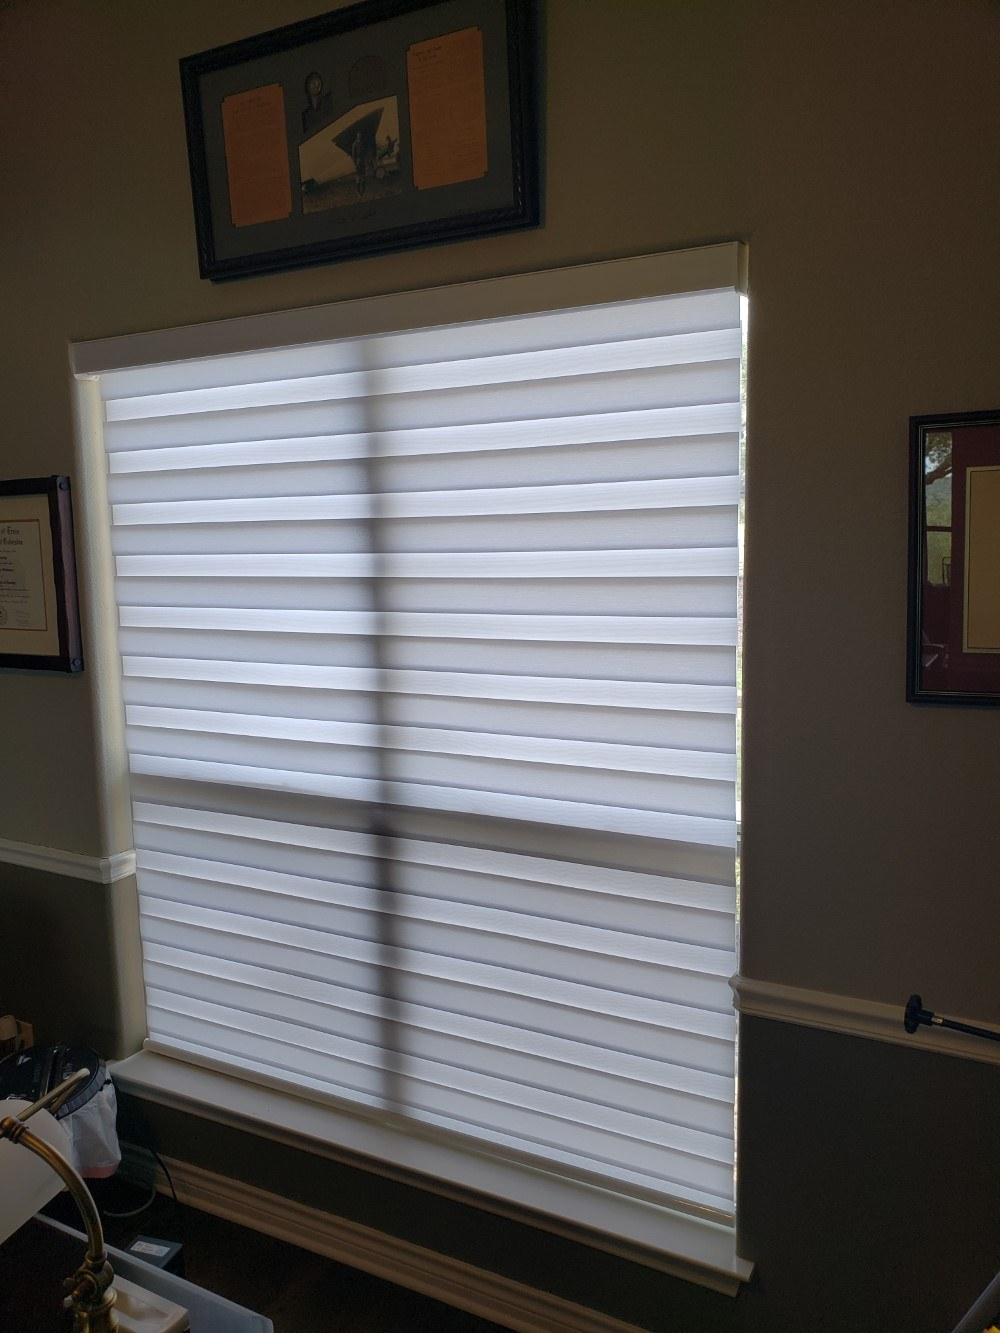 Louvolite Vision Banded Shades in Spring Branch, TX